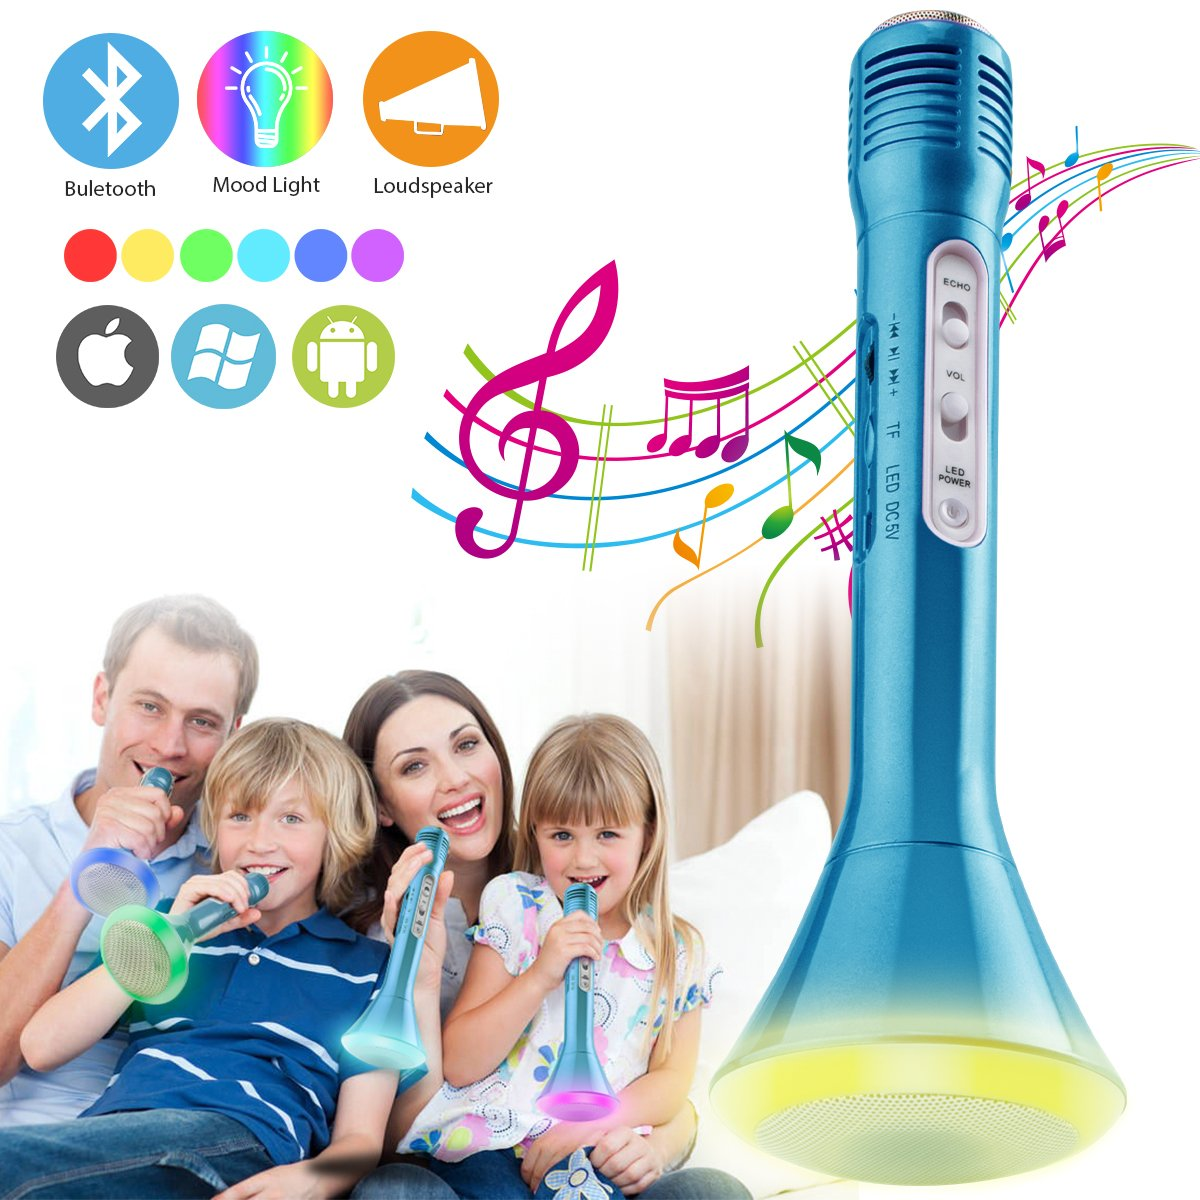 Wireless Kids Karaoke Microphone with Bluetooth Speaker, Portable Handheld Karaoke Player for Home Party KTV Music Singing Playing (Blue)